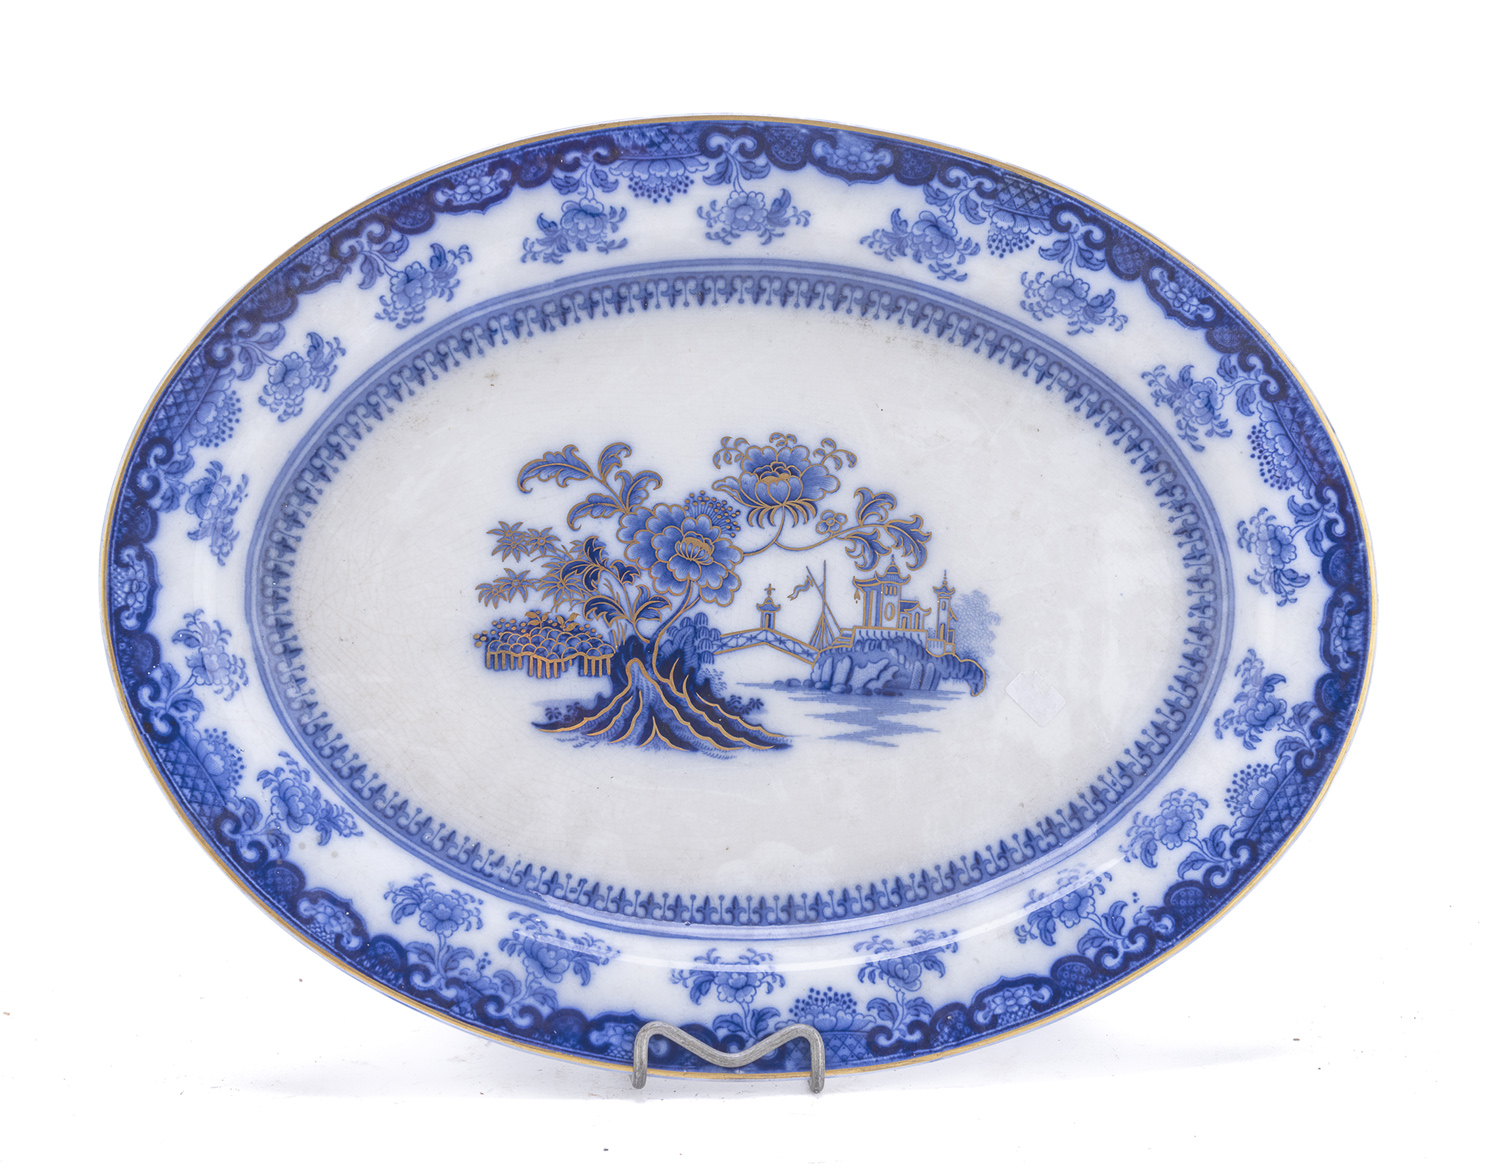 EARTHENWARE TRAY WEDGWOOD EARLY 20TH CENTURY